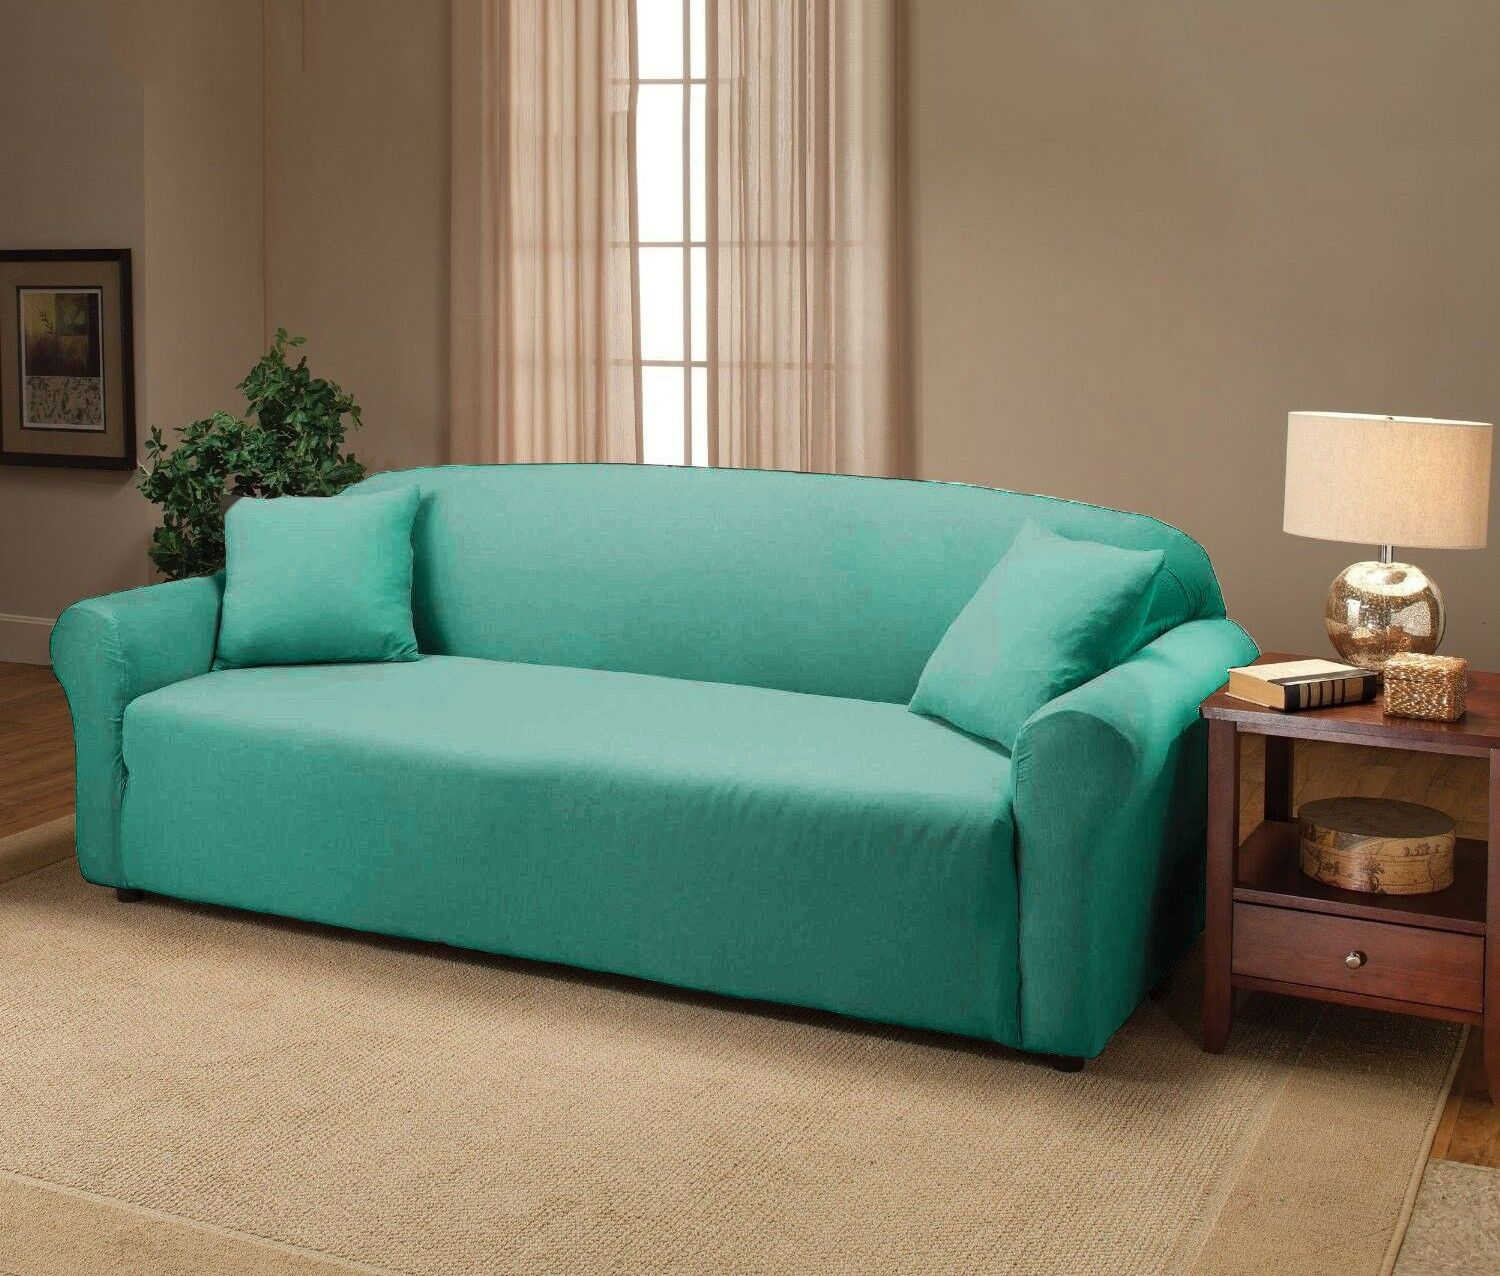 AQUA JERSEY SOFA STRETCH SLIPCOVER COUCH COVER CHAIR